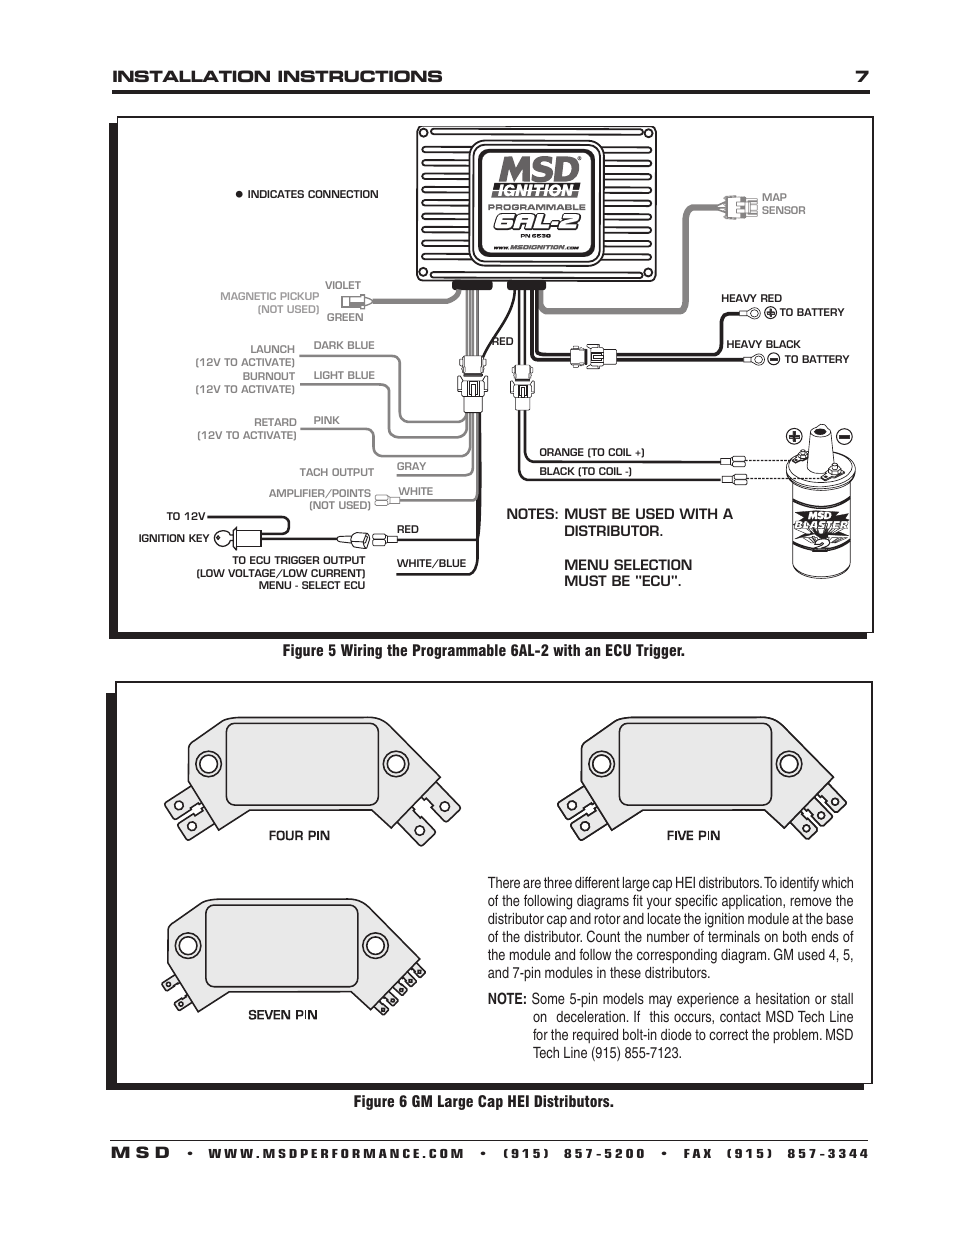 msd 6530 digital programmable 6al 2 installation page7 msd 6al 2 wiring diagram gm hei distributor wiring diagram only  at alyssarenee.co